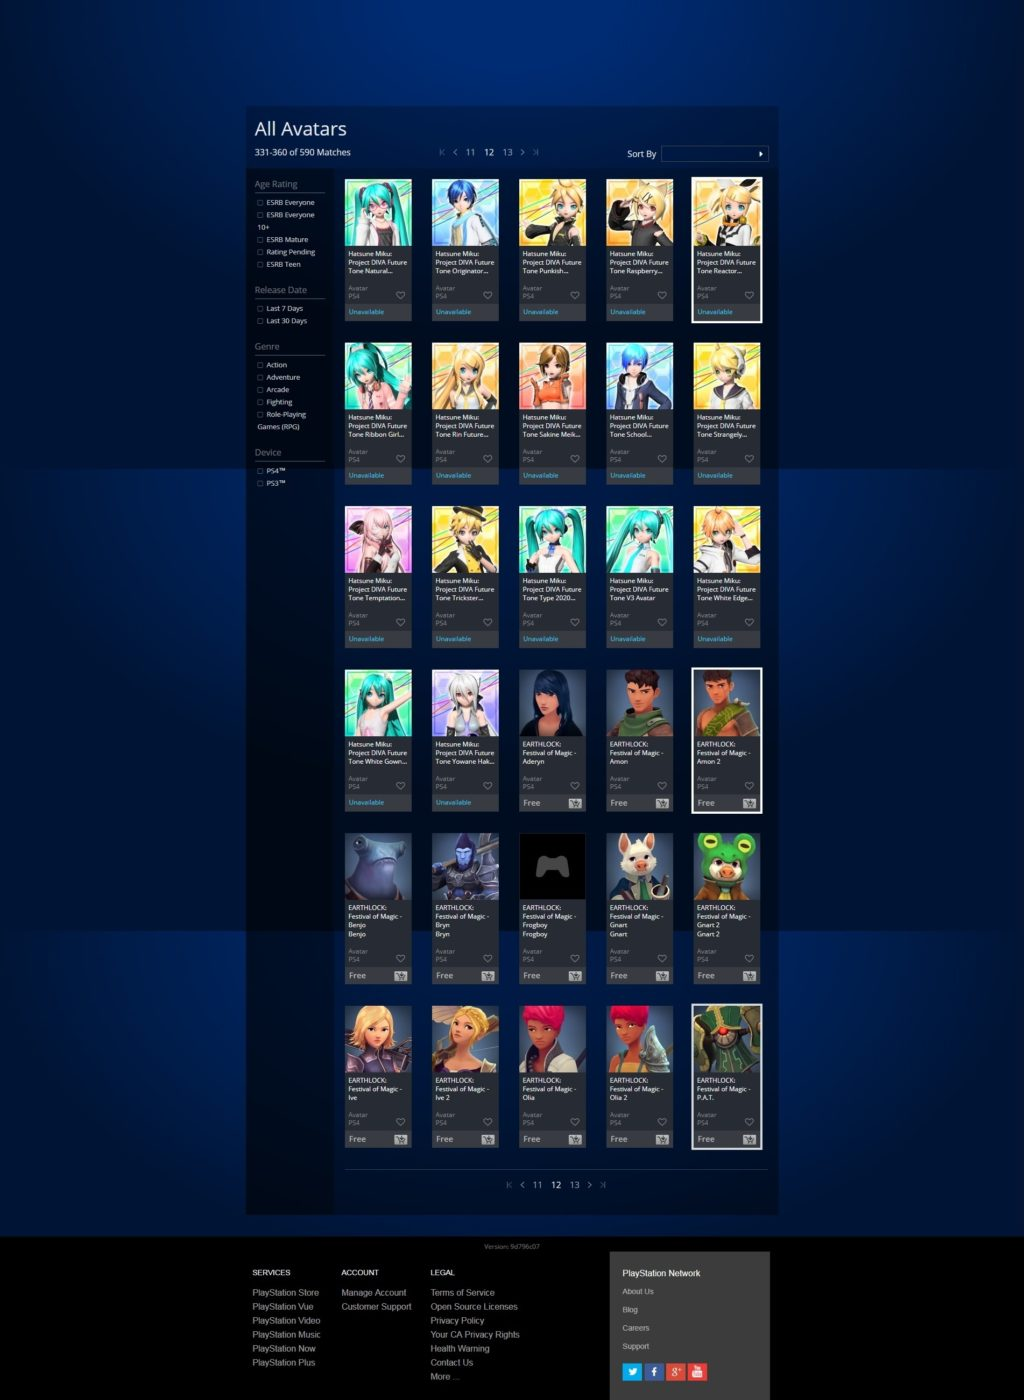 Here's the Complete 20-Page List of Free PS4 Avatars and